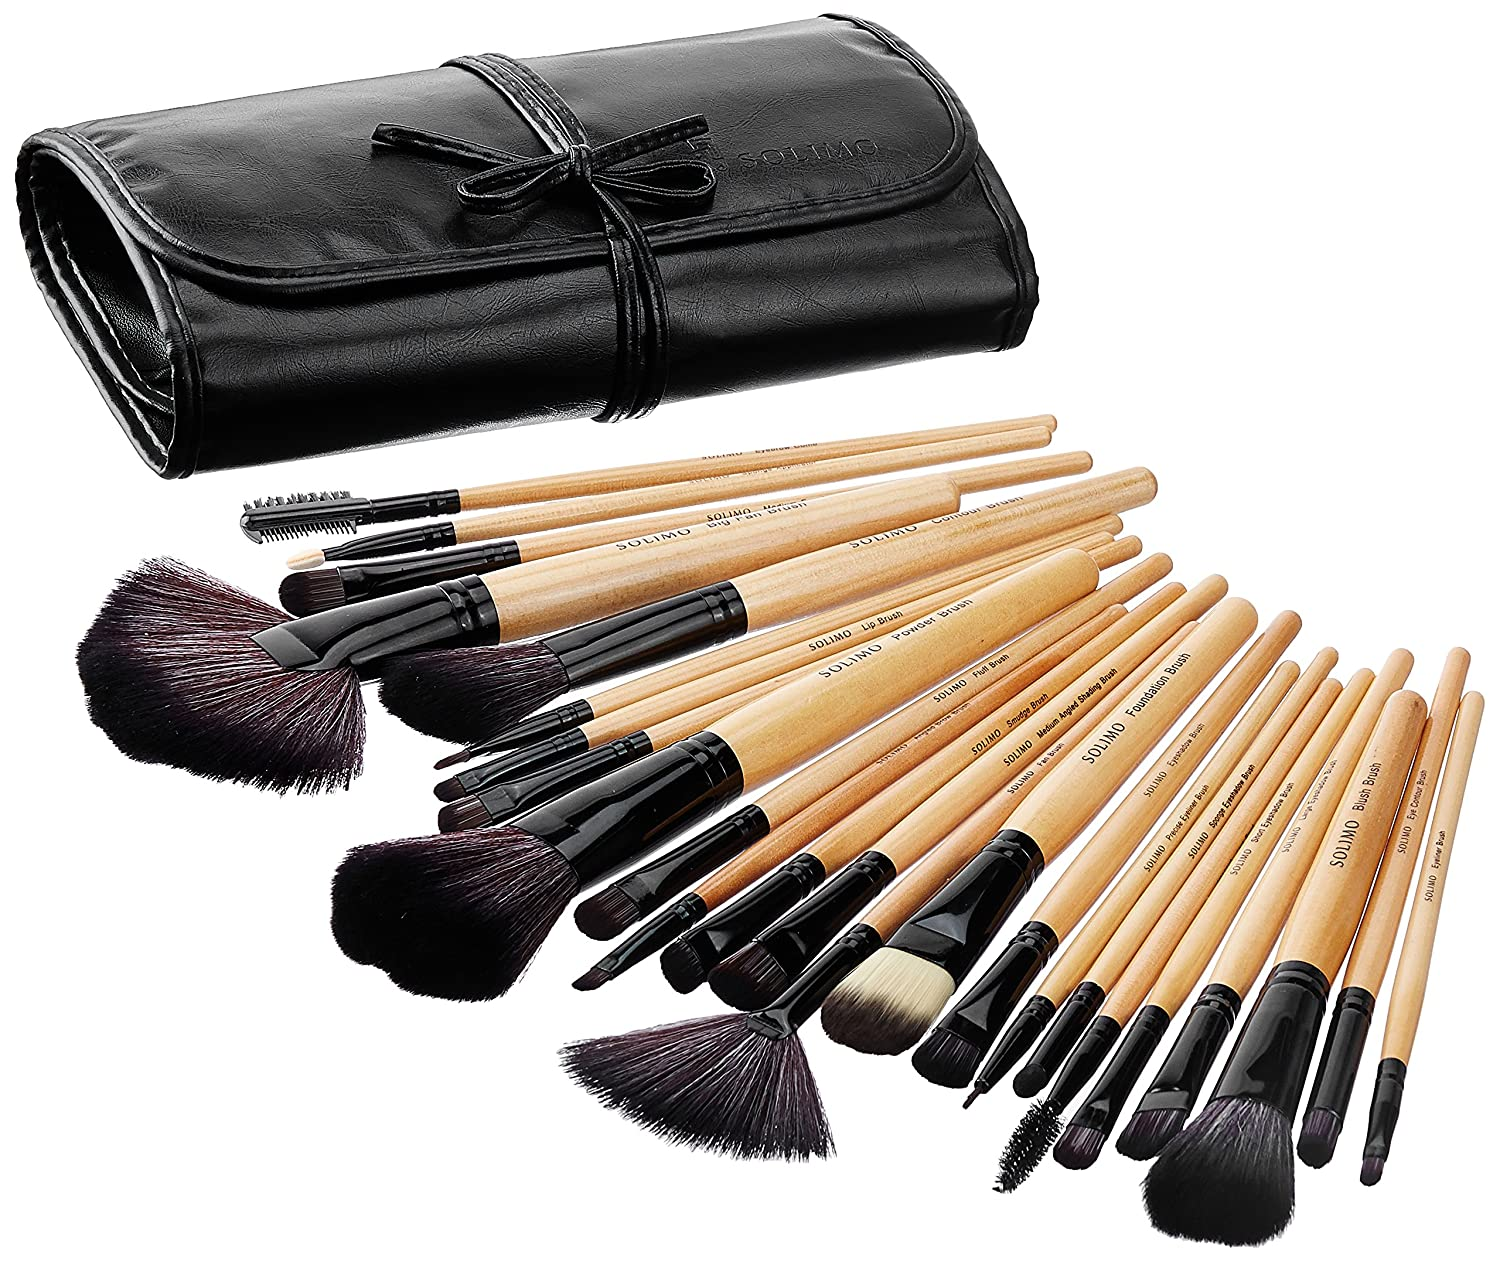 Amazon Brand - Solimo Makeup Brush Set With PU Leather Case (24 Pieces): Amazon.in: Beauty